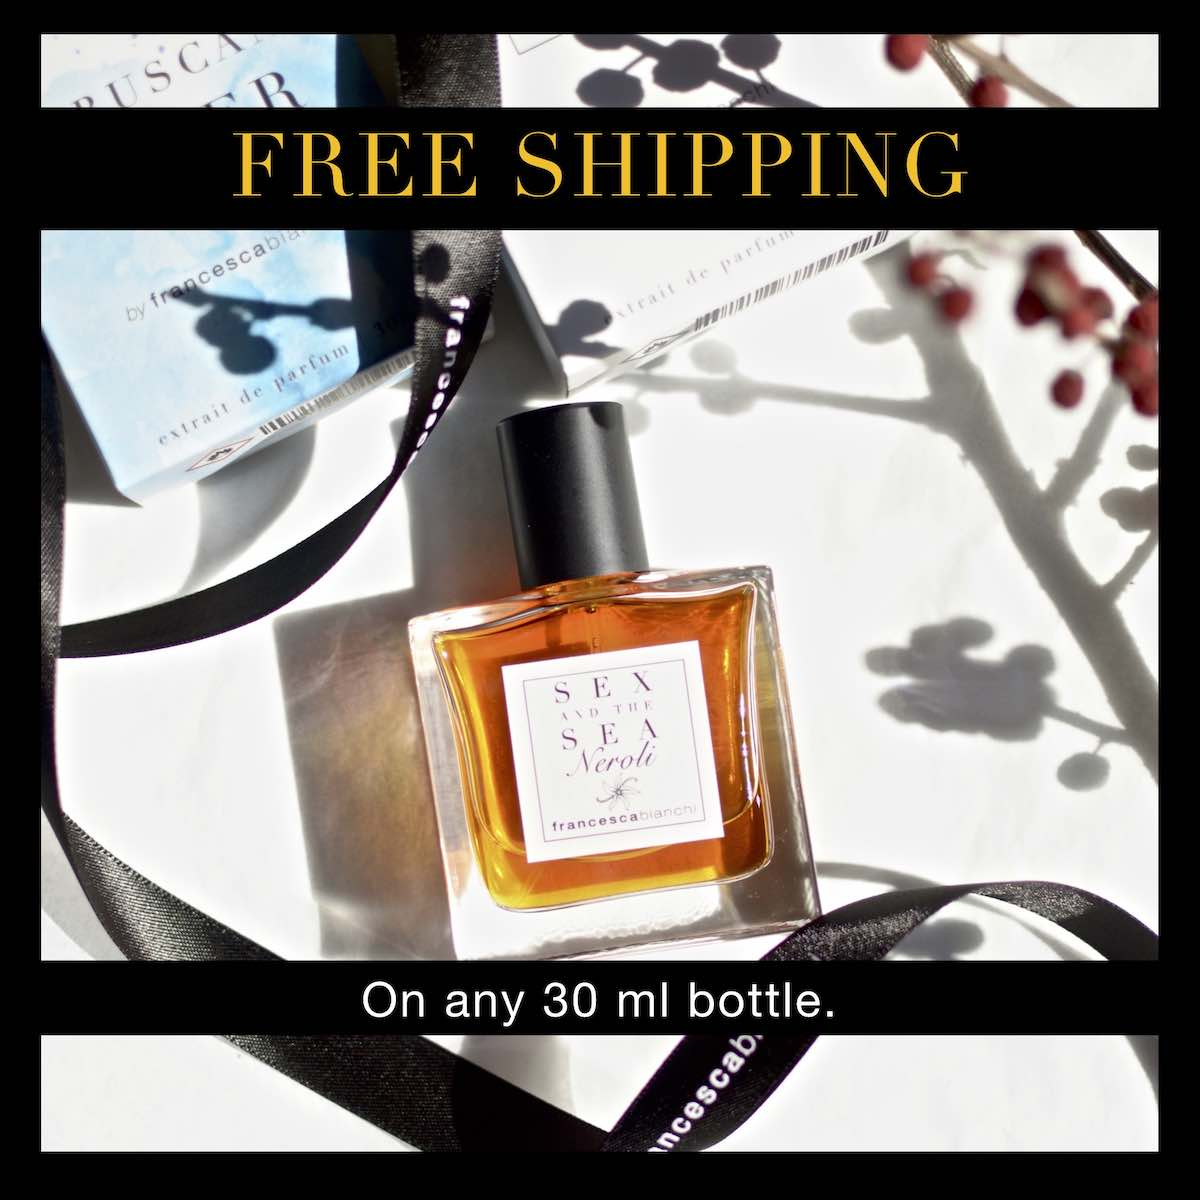 extended-free-shipping-francesca-bianchi-perfumes